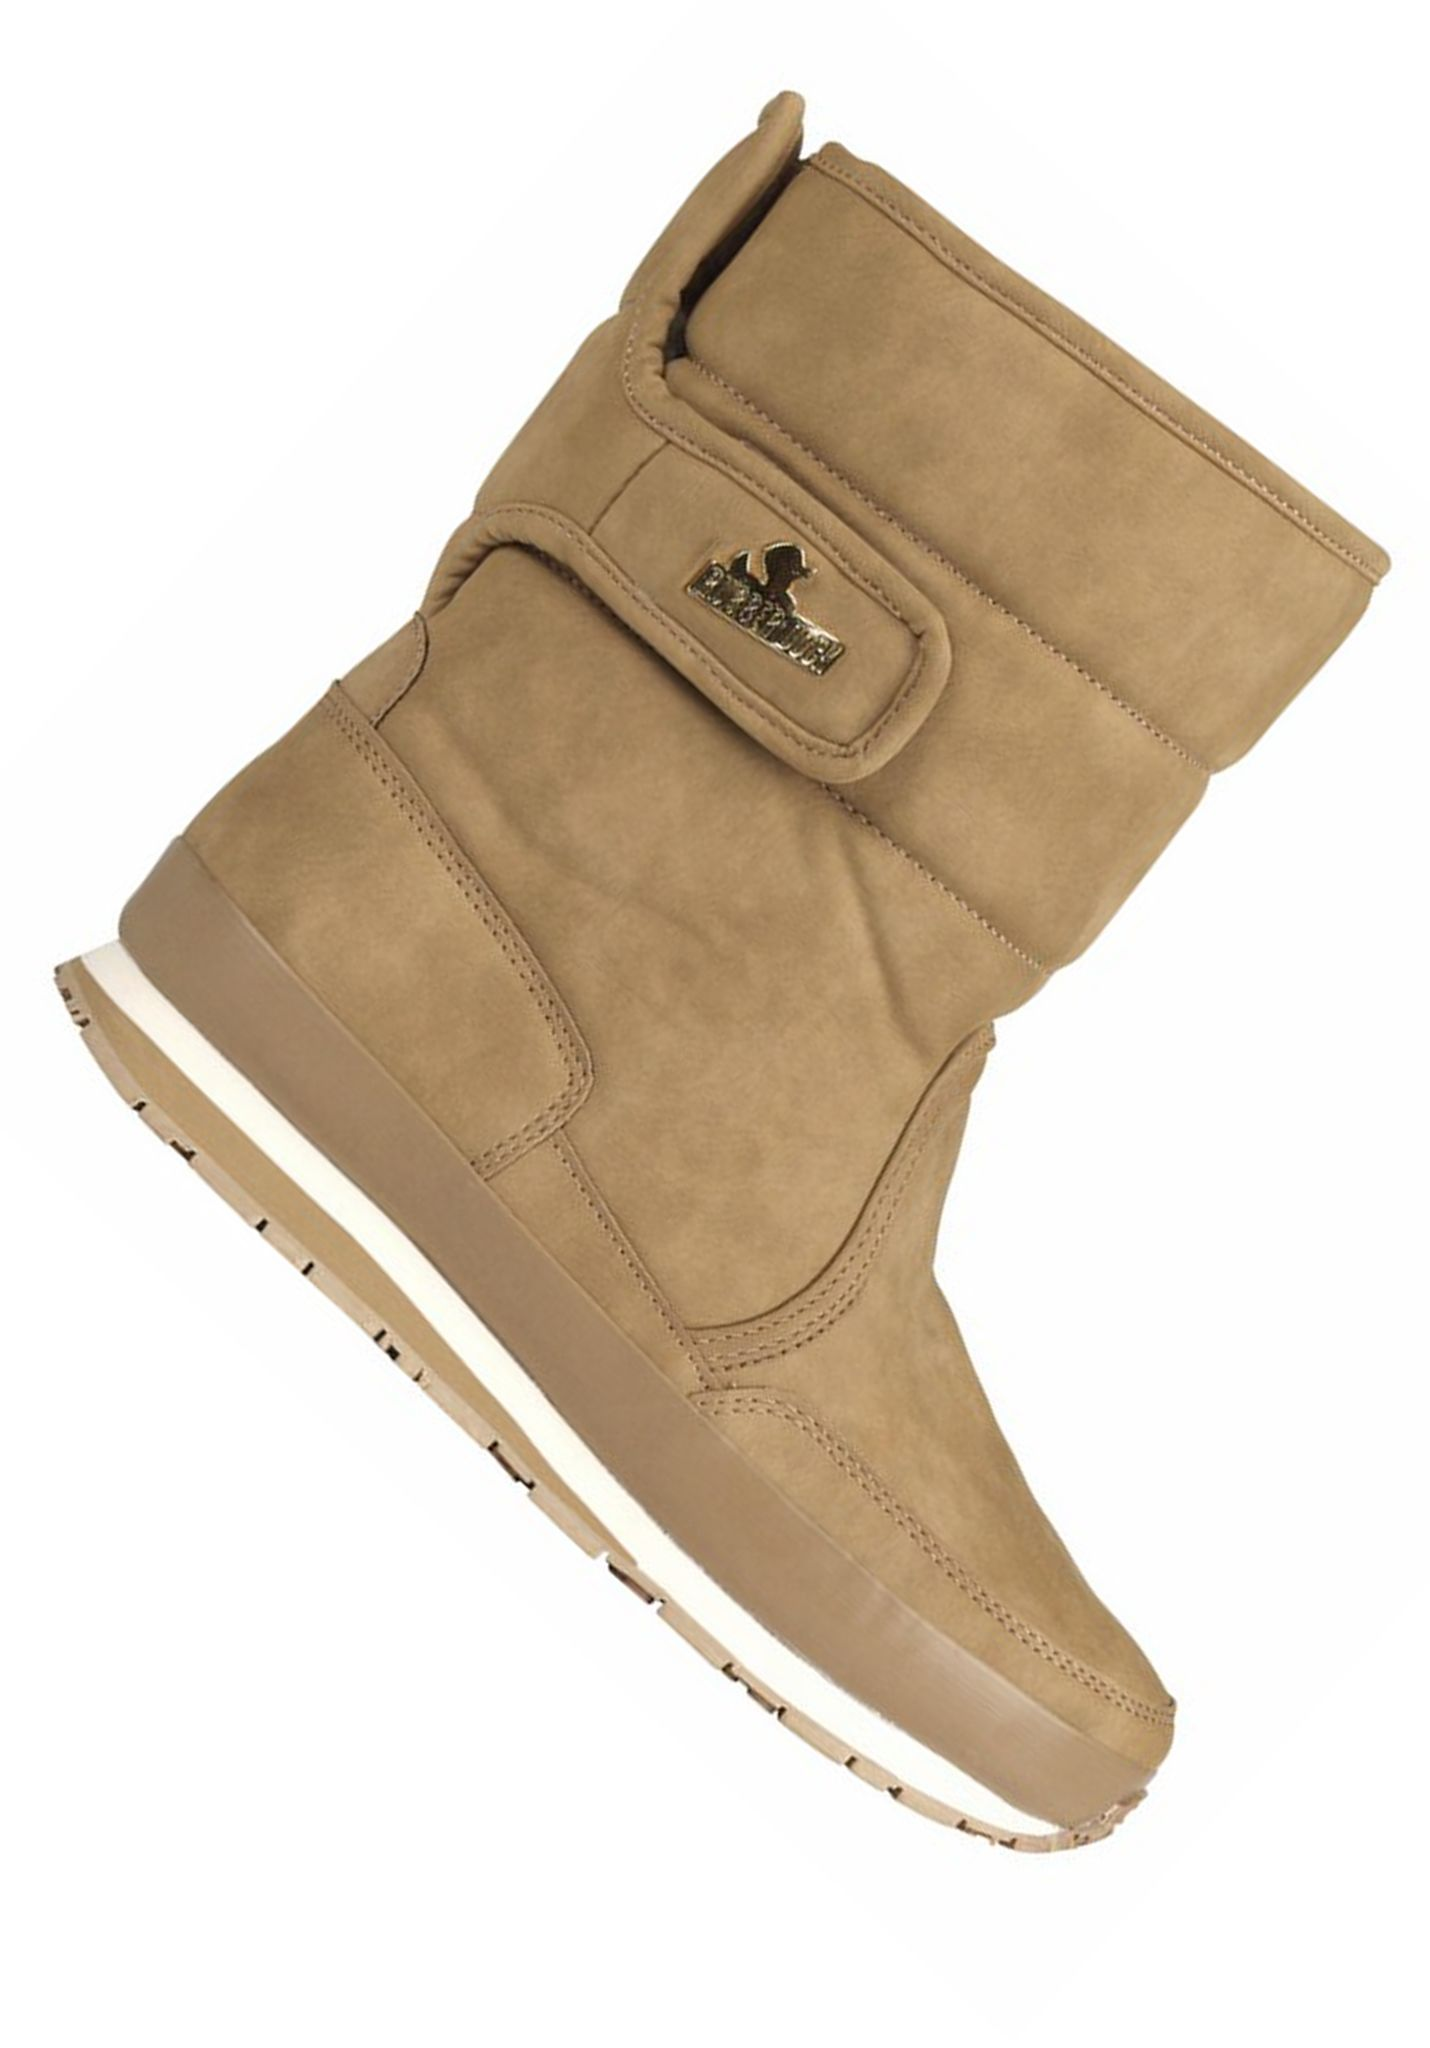 RUBBER DUCK Snow Jogger Synth Nubuck - Boots for Women - Khaki/Beige ...